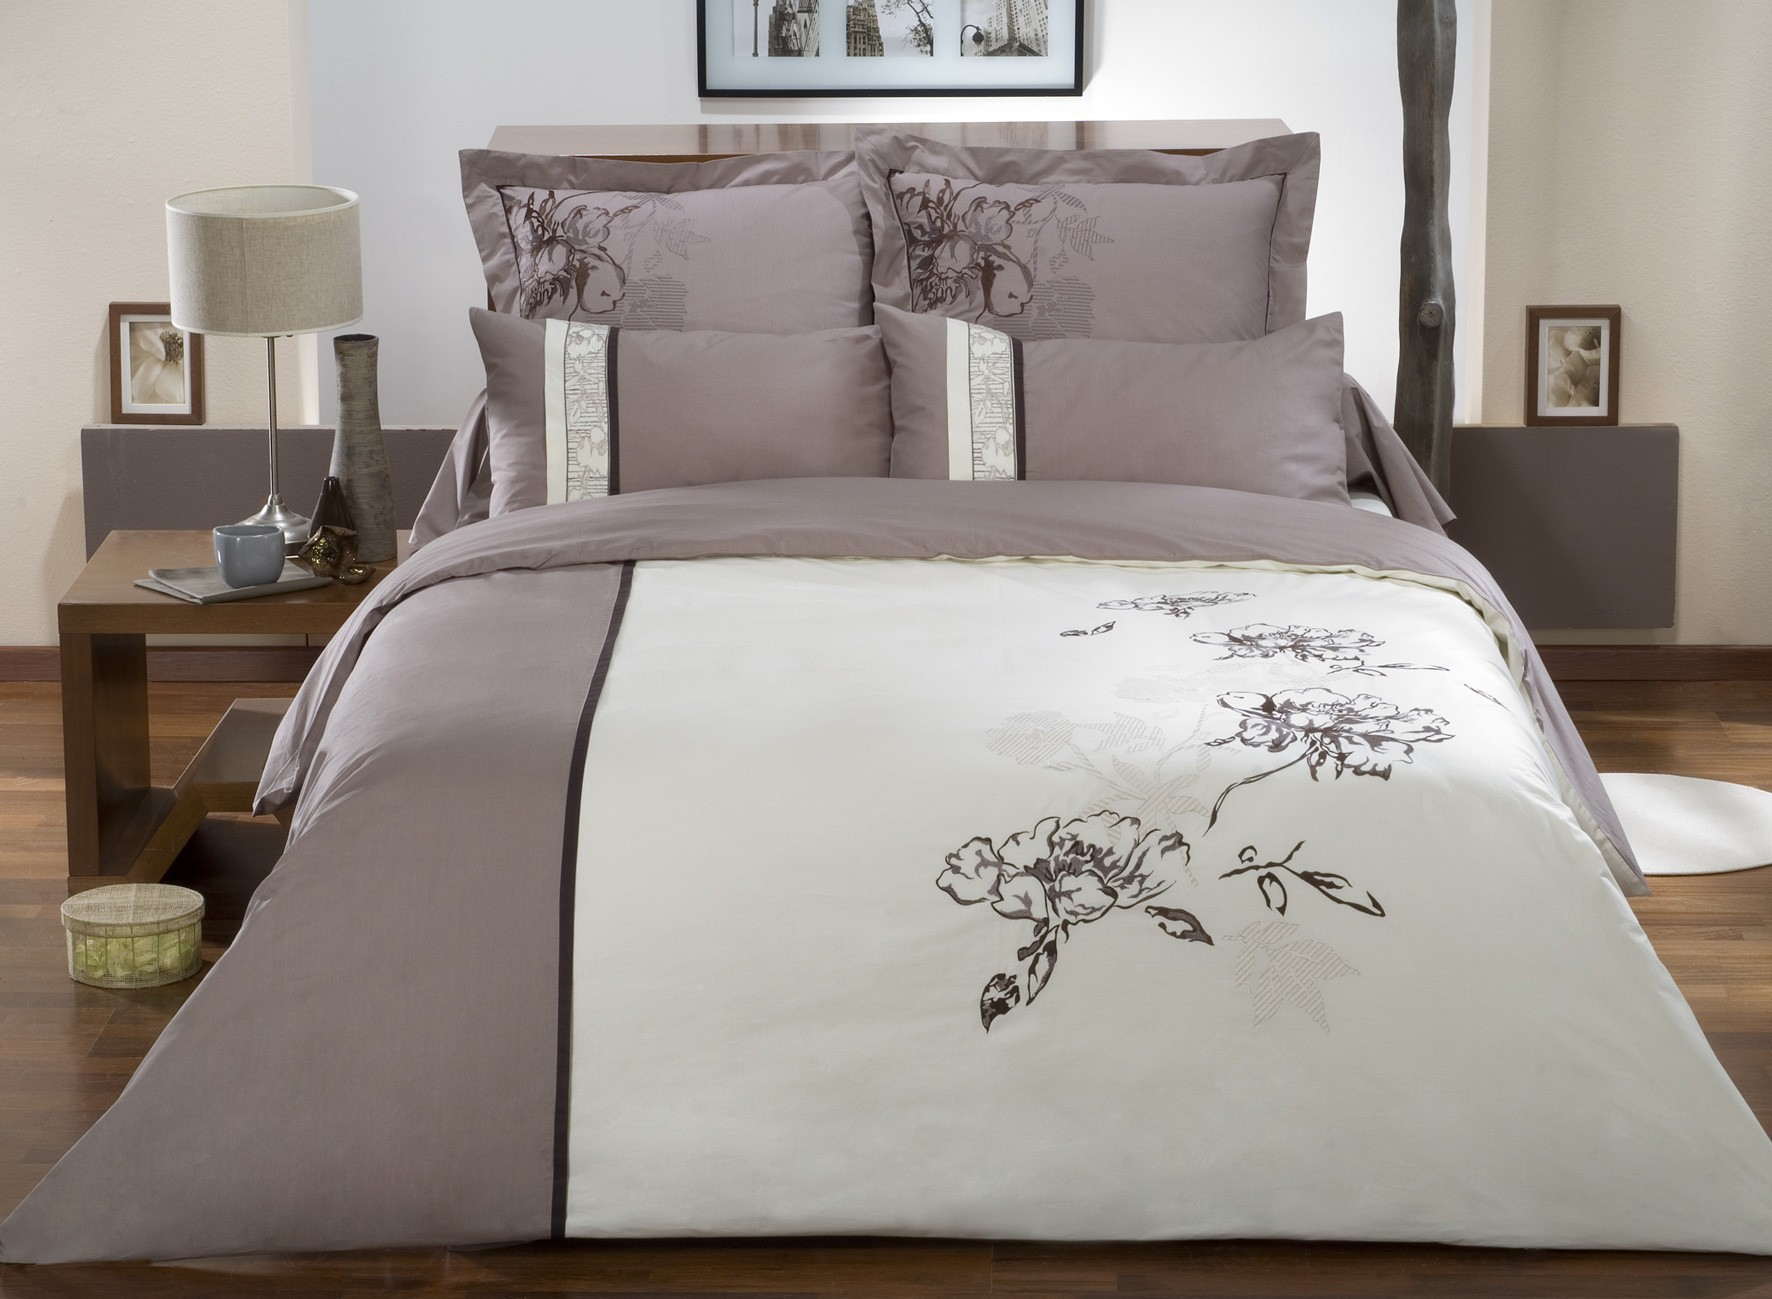 Linge de lit en percale de coton drap housse de la collection chocolat la malle des anges - Drap housse couette integree ...